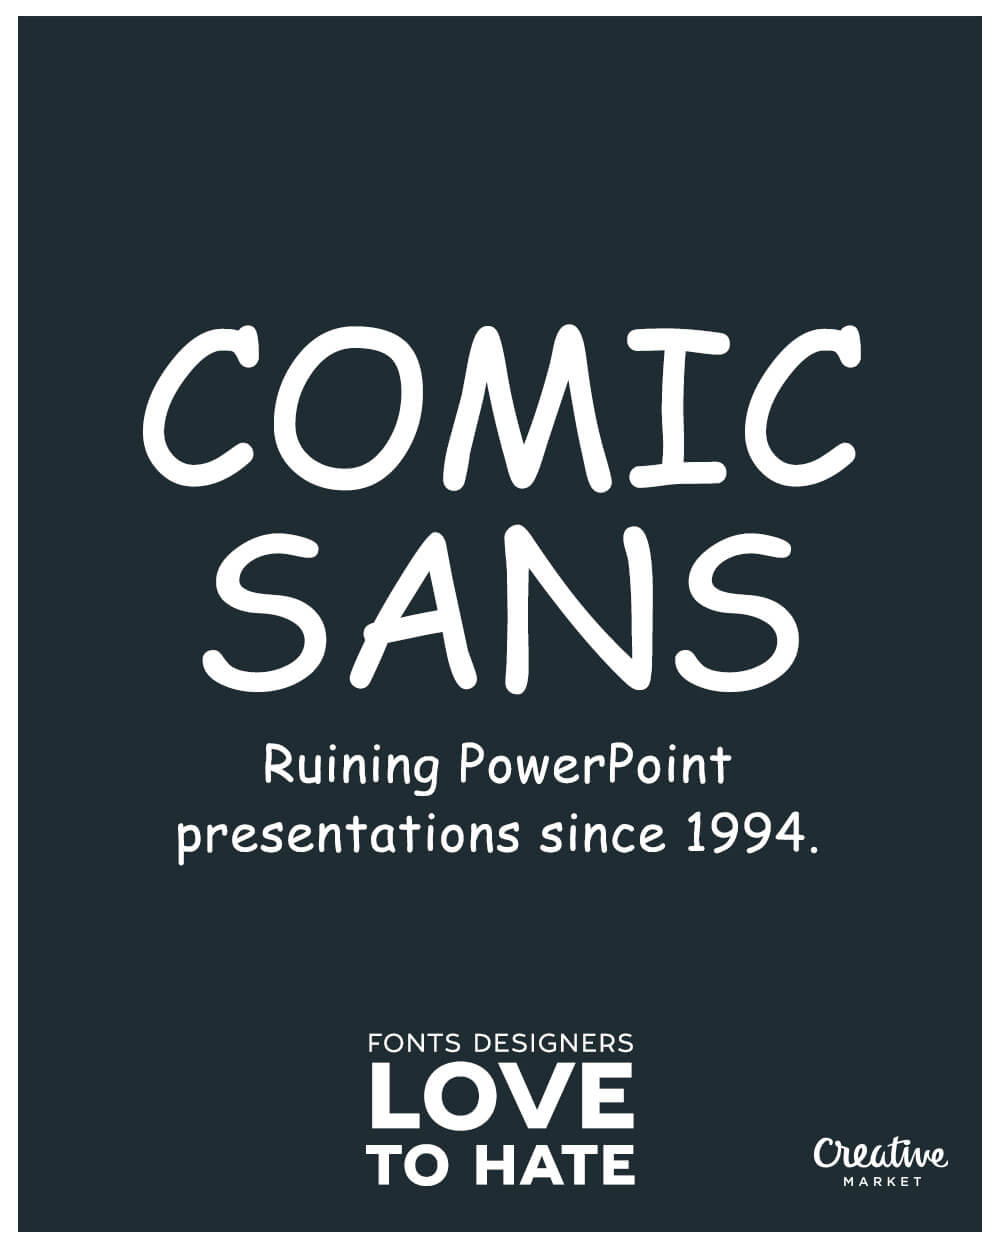 10 fonts designers love to hate: Comic Sans